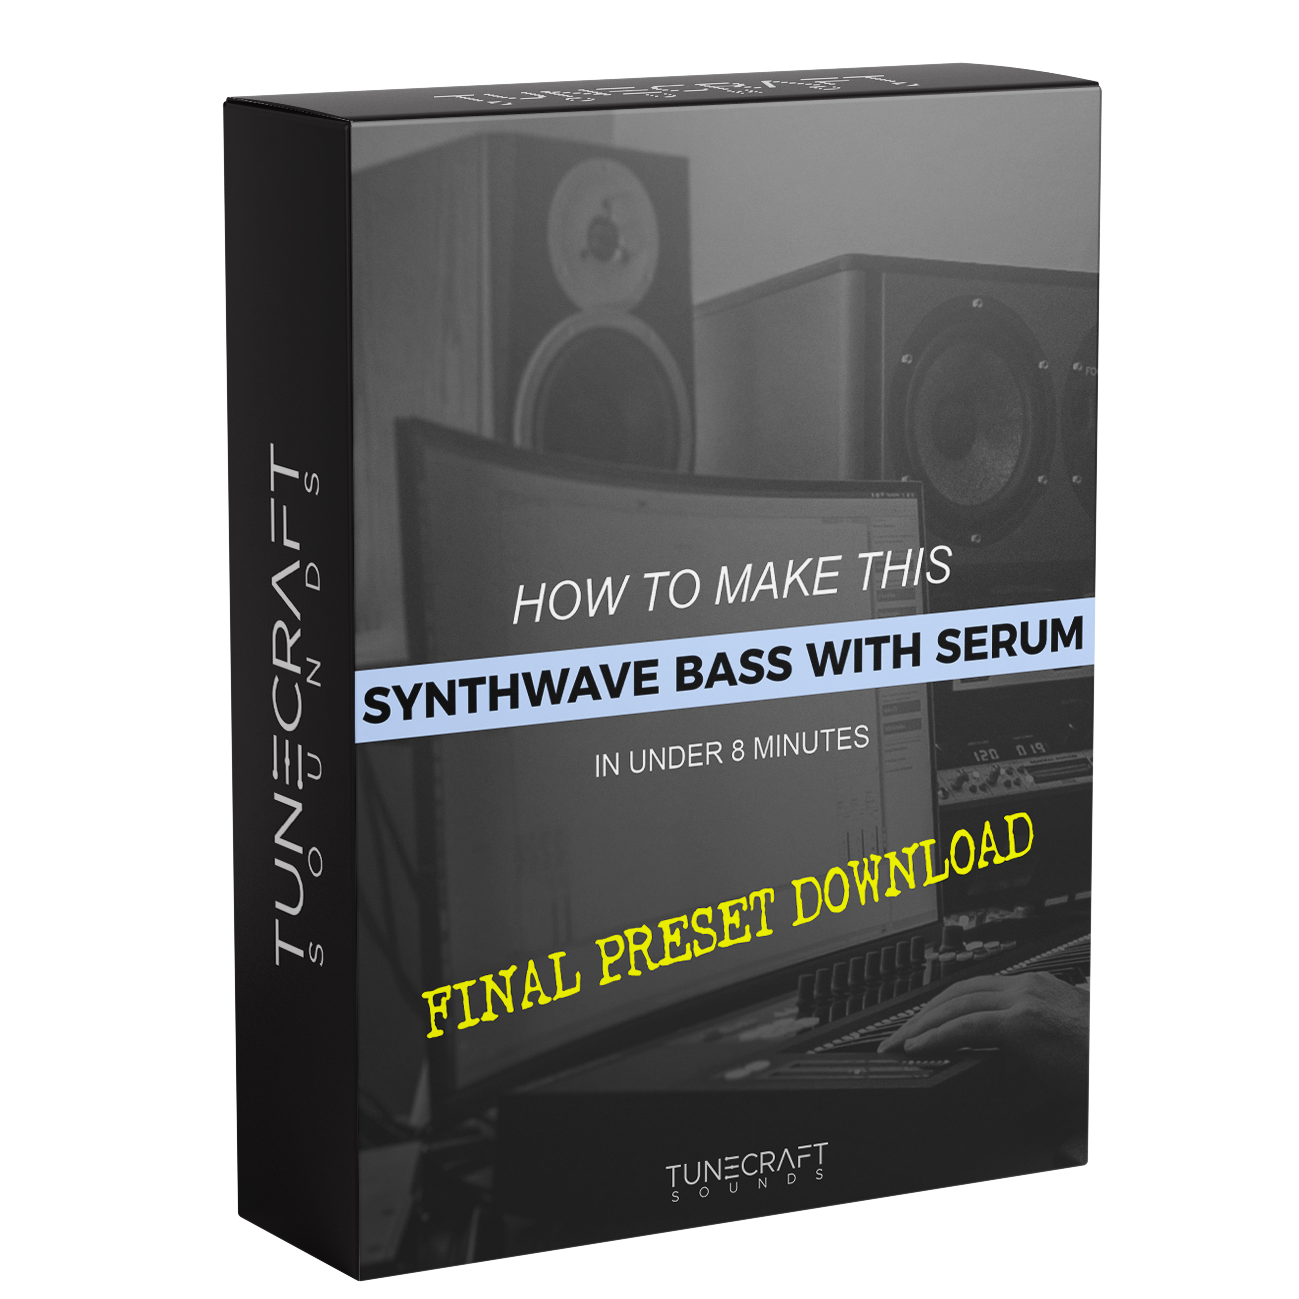 Tuto-Synthwave-bass-remake-3D-Box-NS